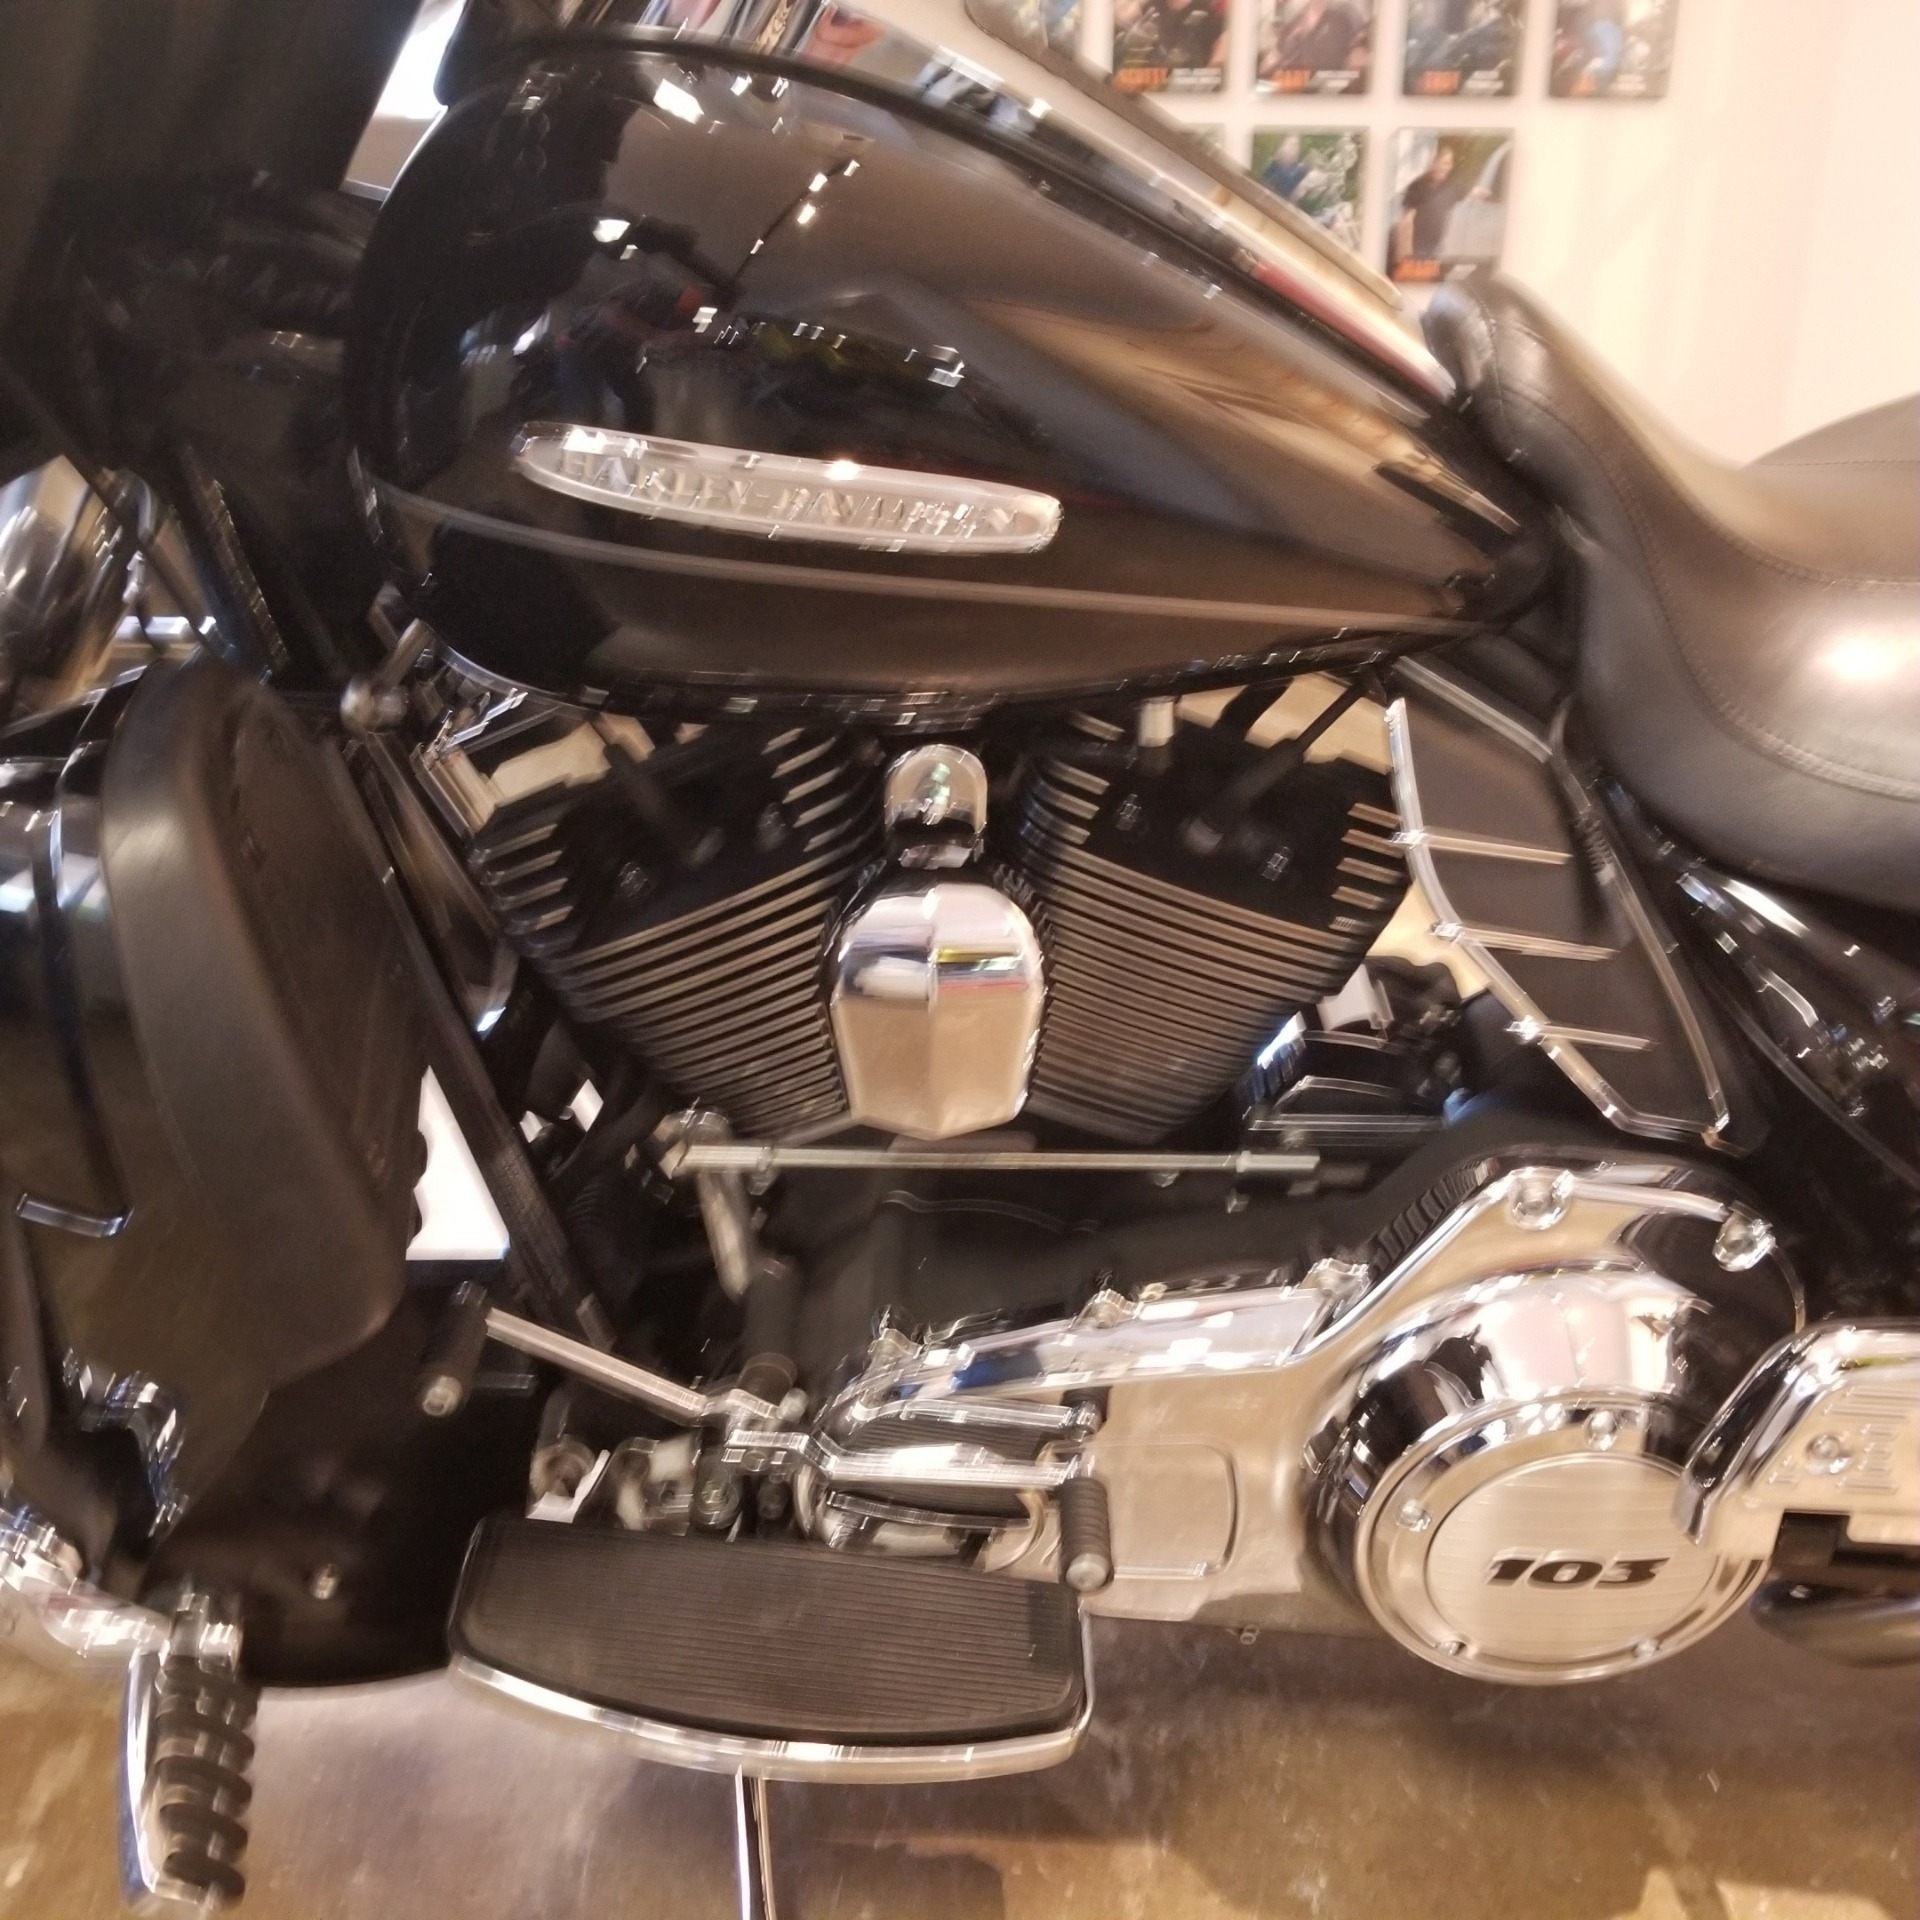 2011 Harley-Davidson Electra Glide® Ultra Limited in Mentor, Ohio - Photo 10